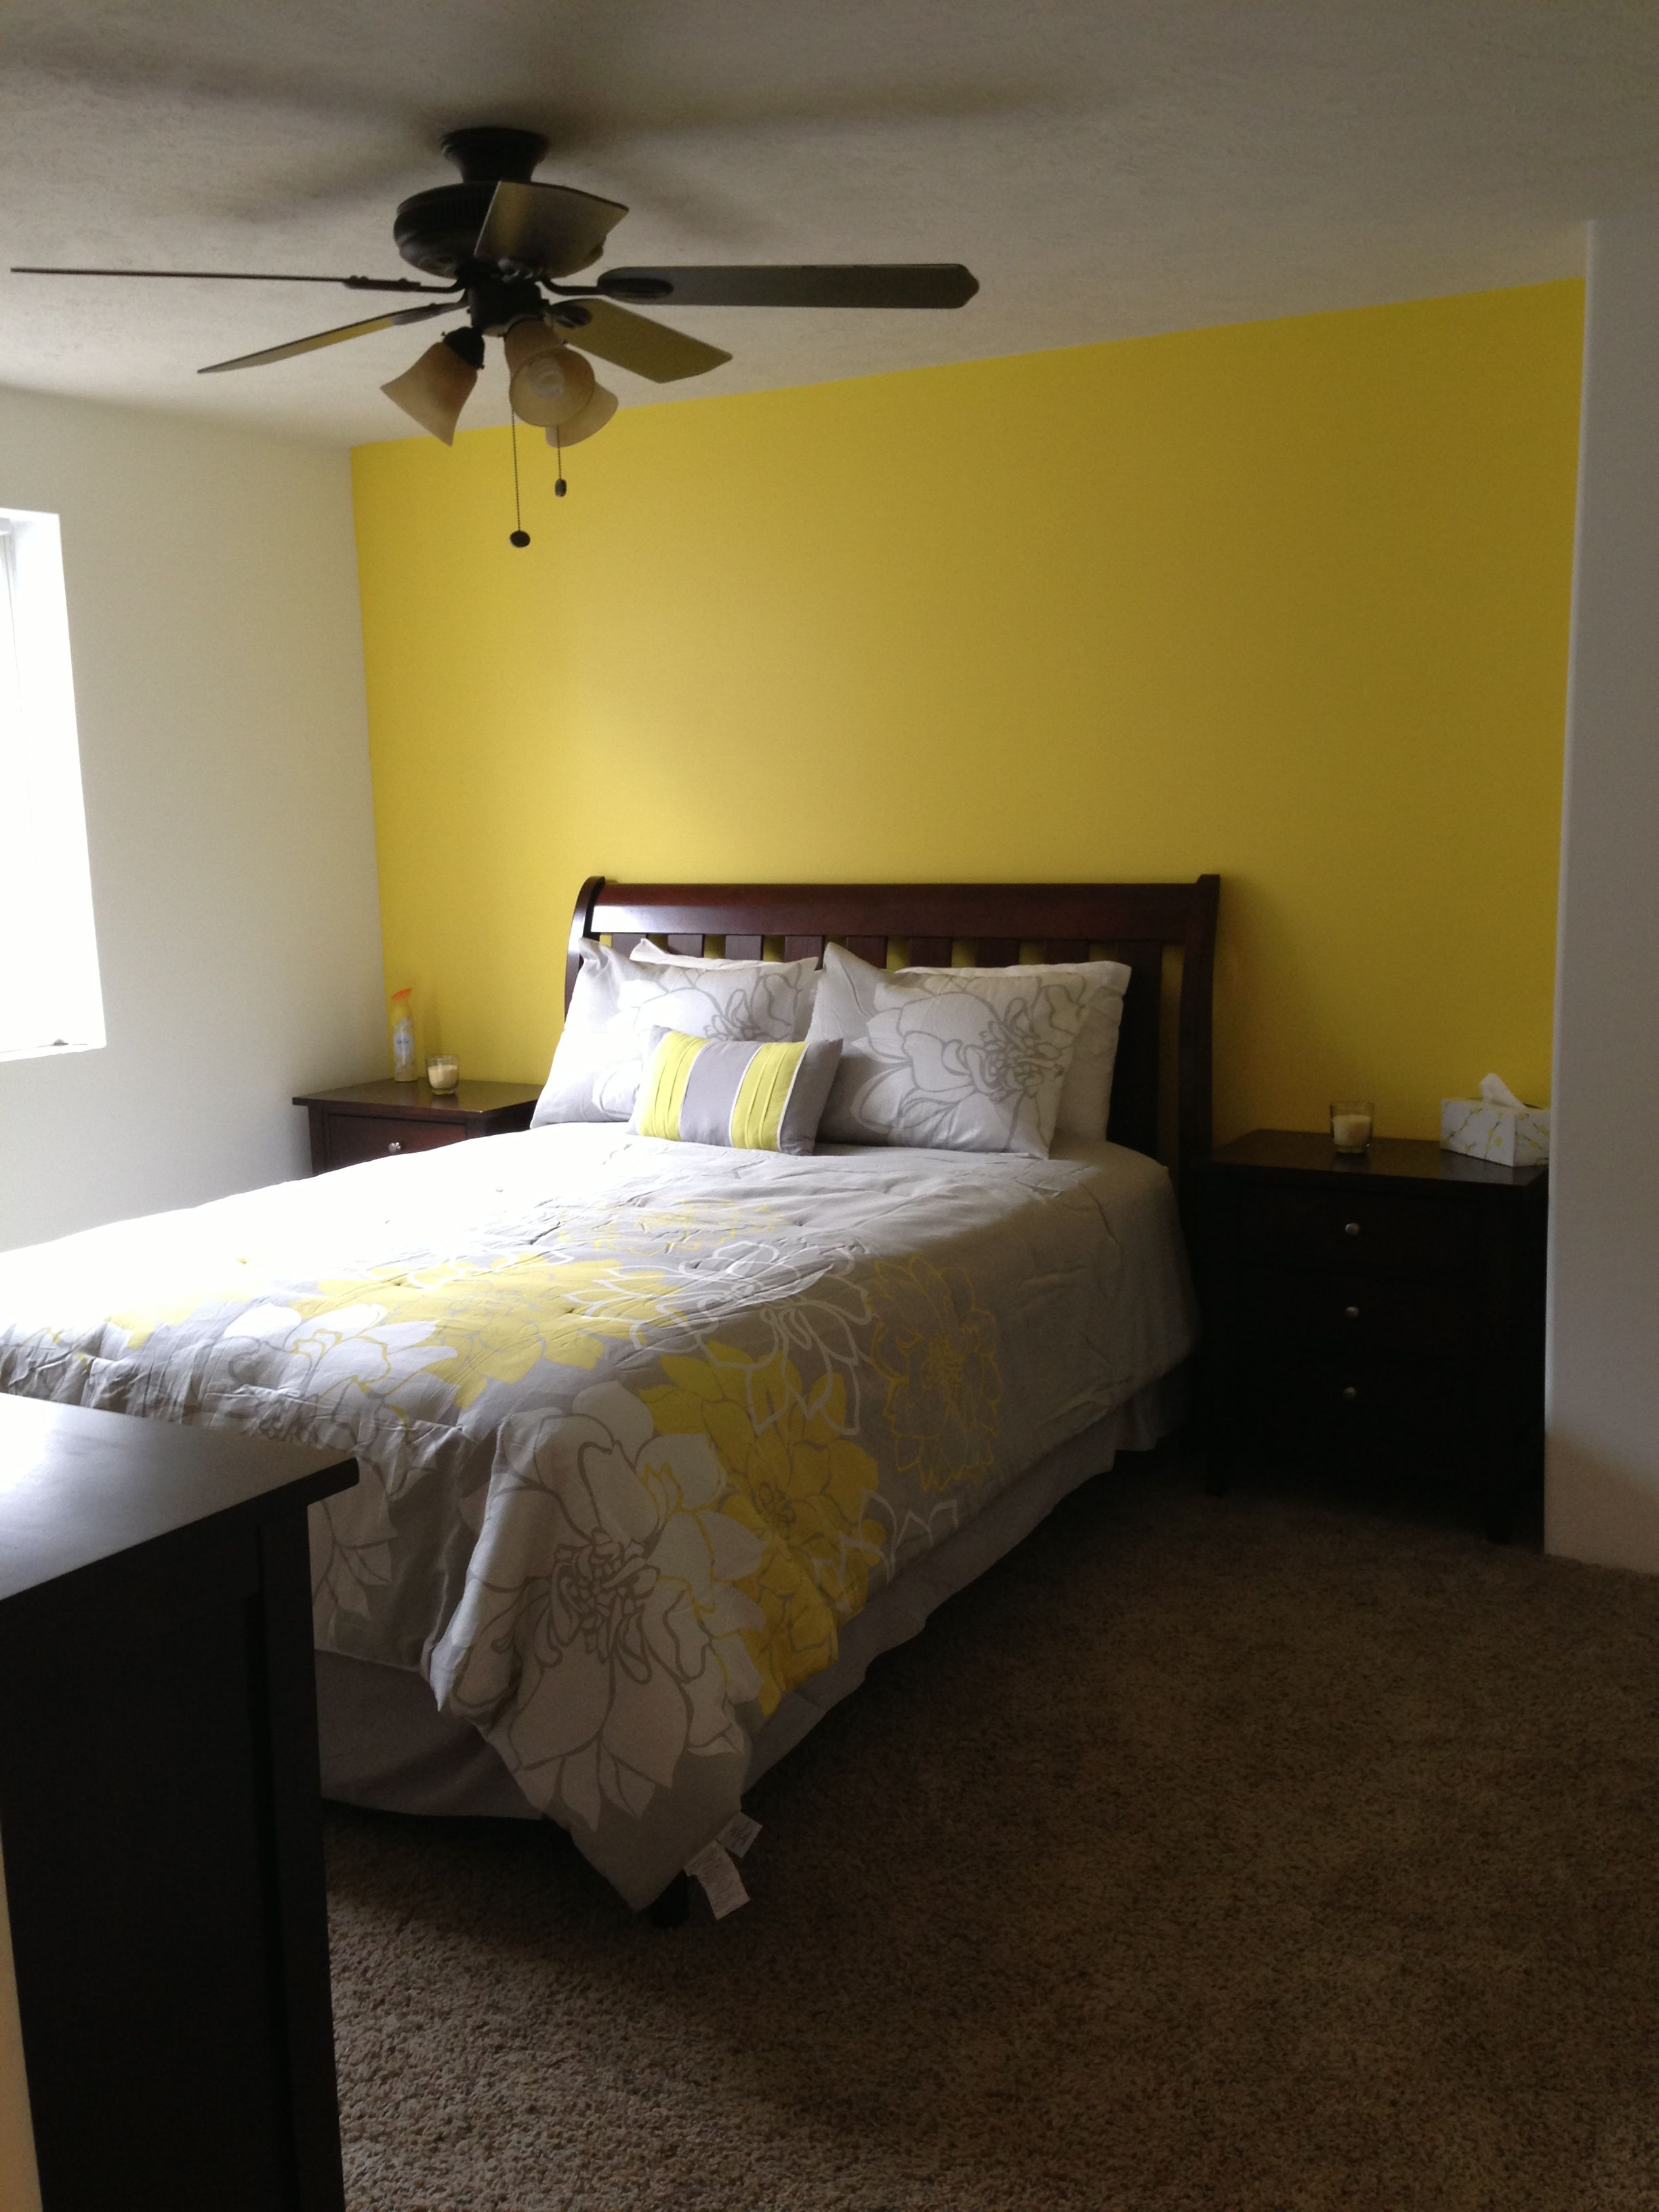 Basement Bedroom Love Our Yellow Accent Wall With Images